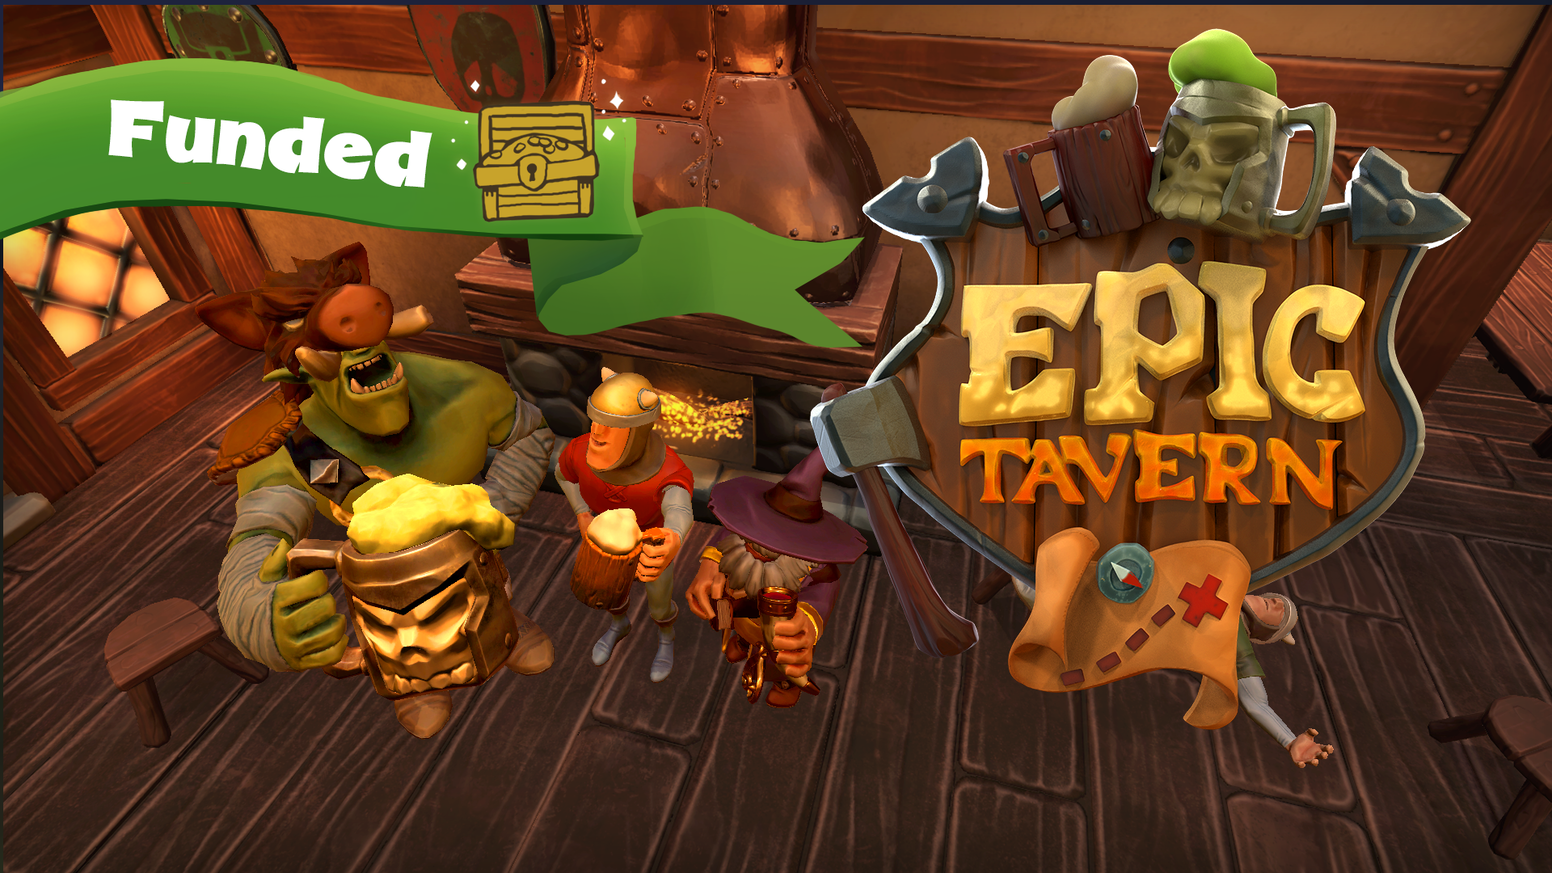 Epic Tavern - Rule the Land from your Tavern! by Richie Bisso